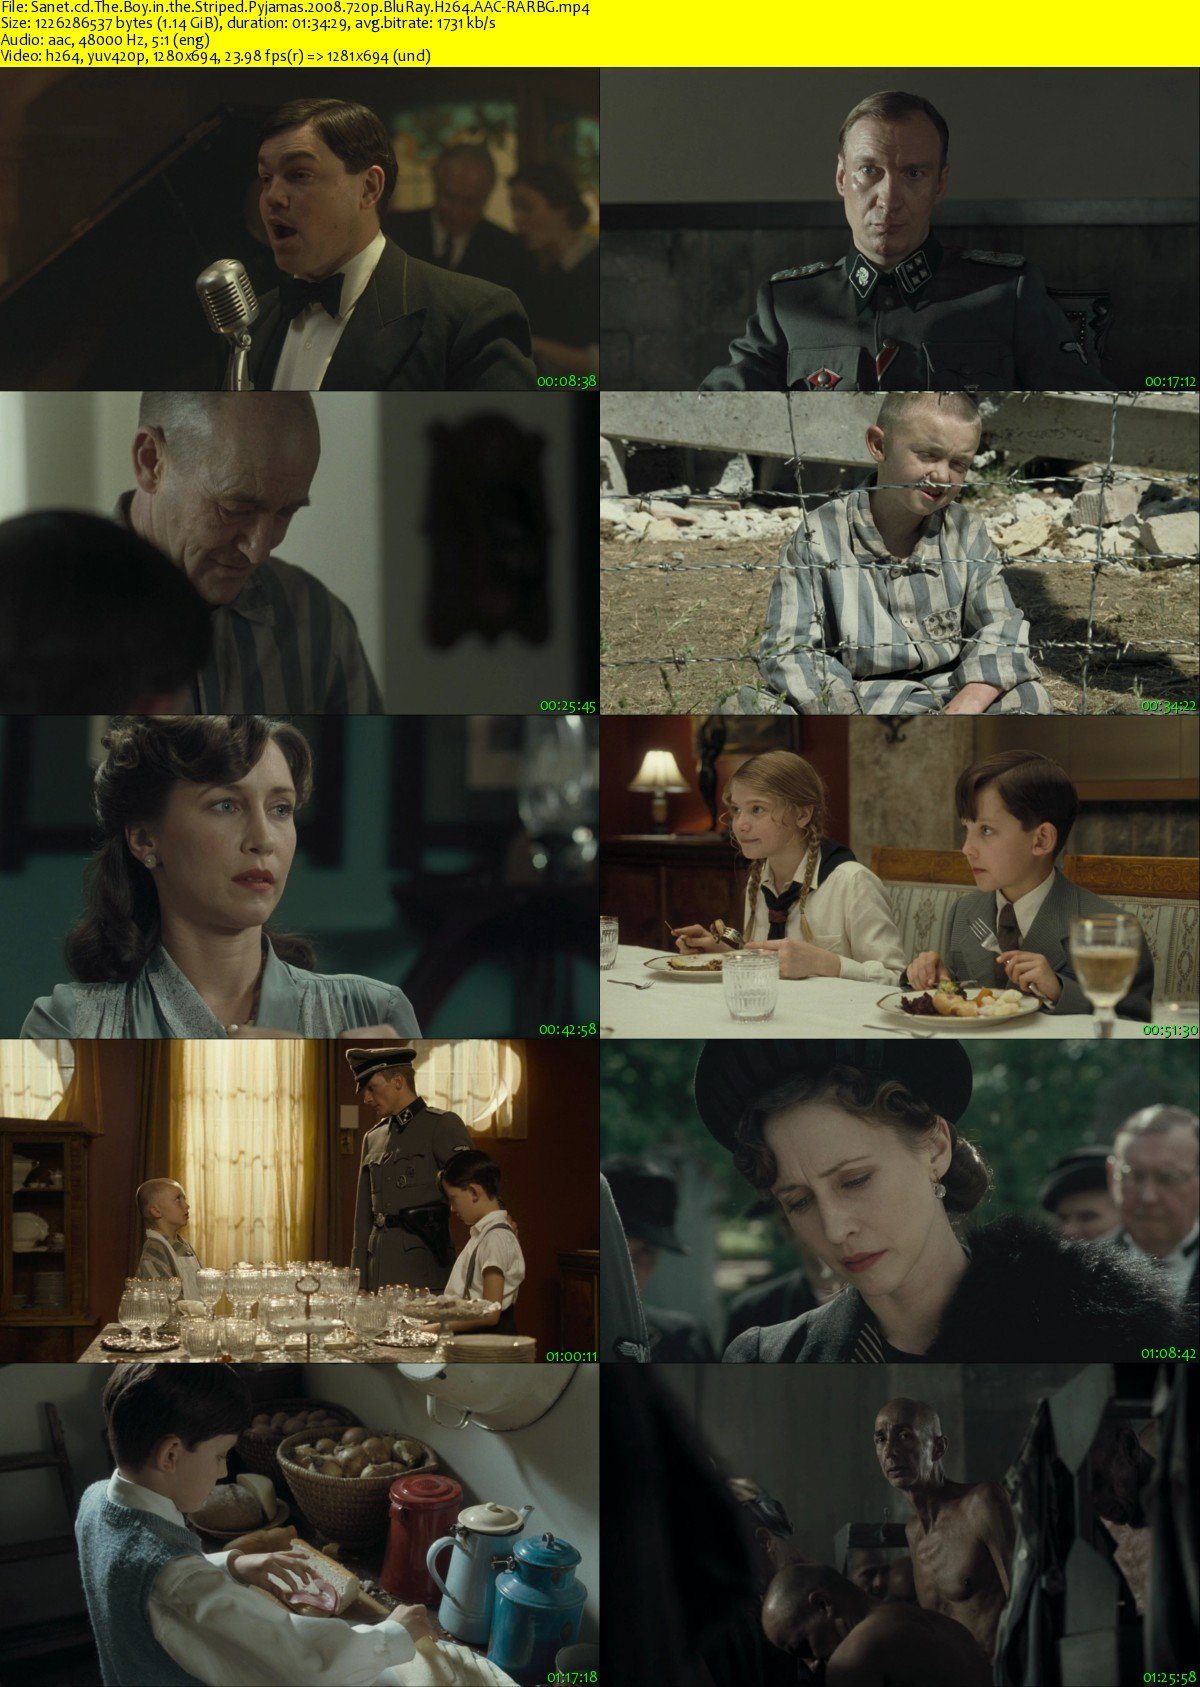 the boy in the striped pyjamas movie download 480p